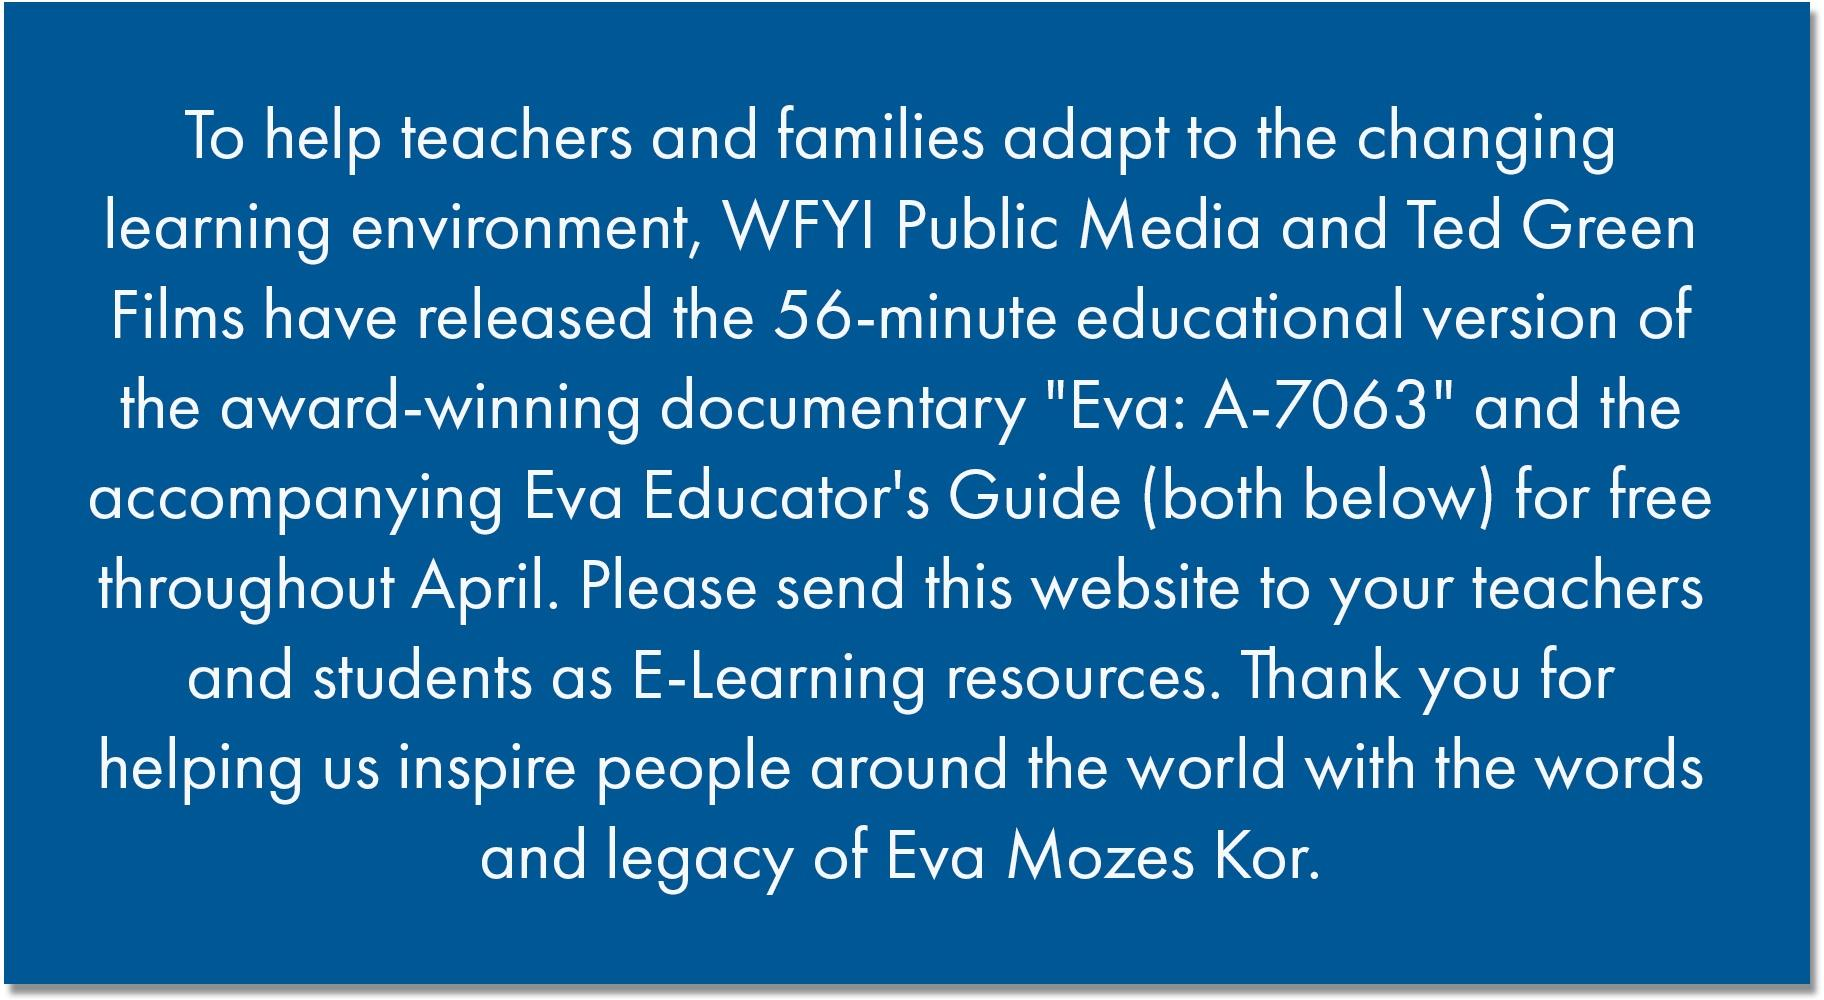 "To help teachers and families adapt to the changing learning environment, WFYI Public Media and Ted Green Films have released the 56-minute educational version of the award-winning documentary ""Eva: A-7063"" and the accompanying Eva Educator's Guide (both below) for free throughout April. Please send this website to your teachers and students as E-Learning resources. Thank you for helping us inspire people around the world with the words and legacy of Eva Mozes Kor."